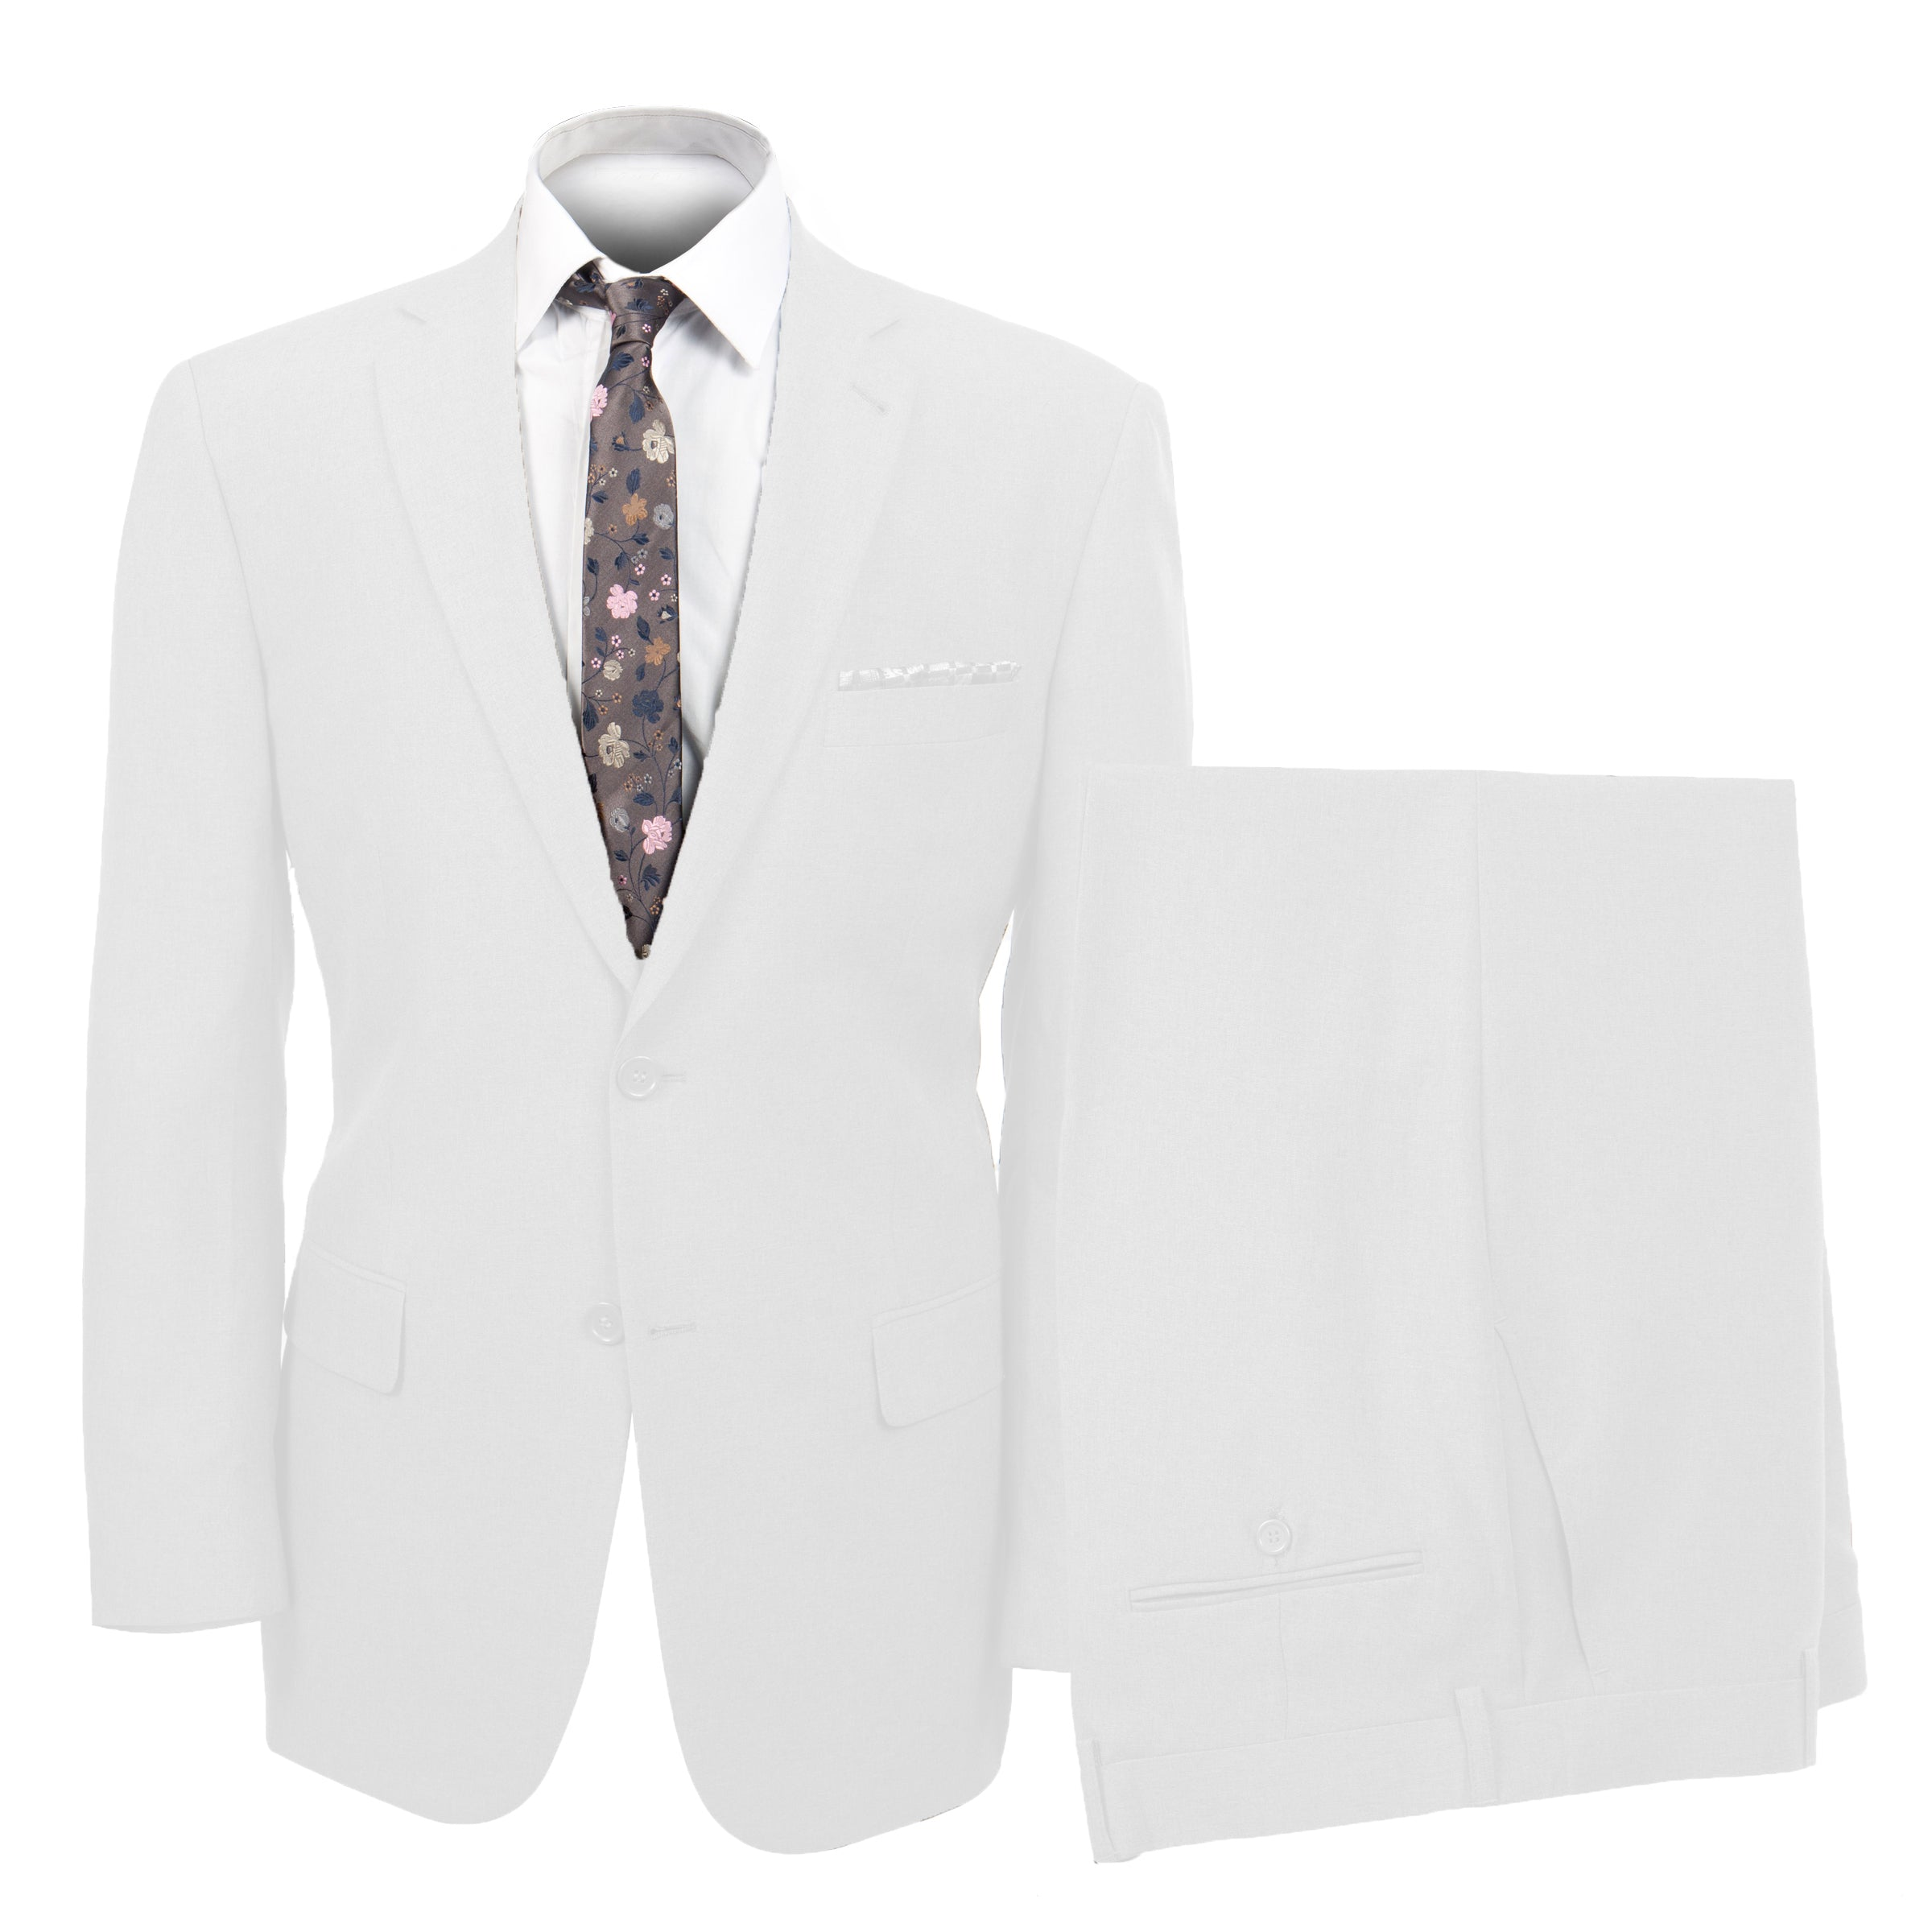 White Suit For Men Formal Suits For All Ocassions M116-05